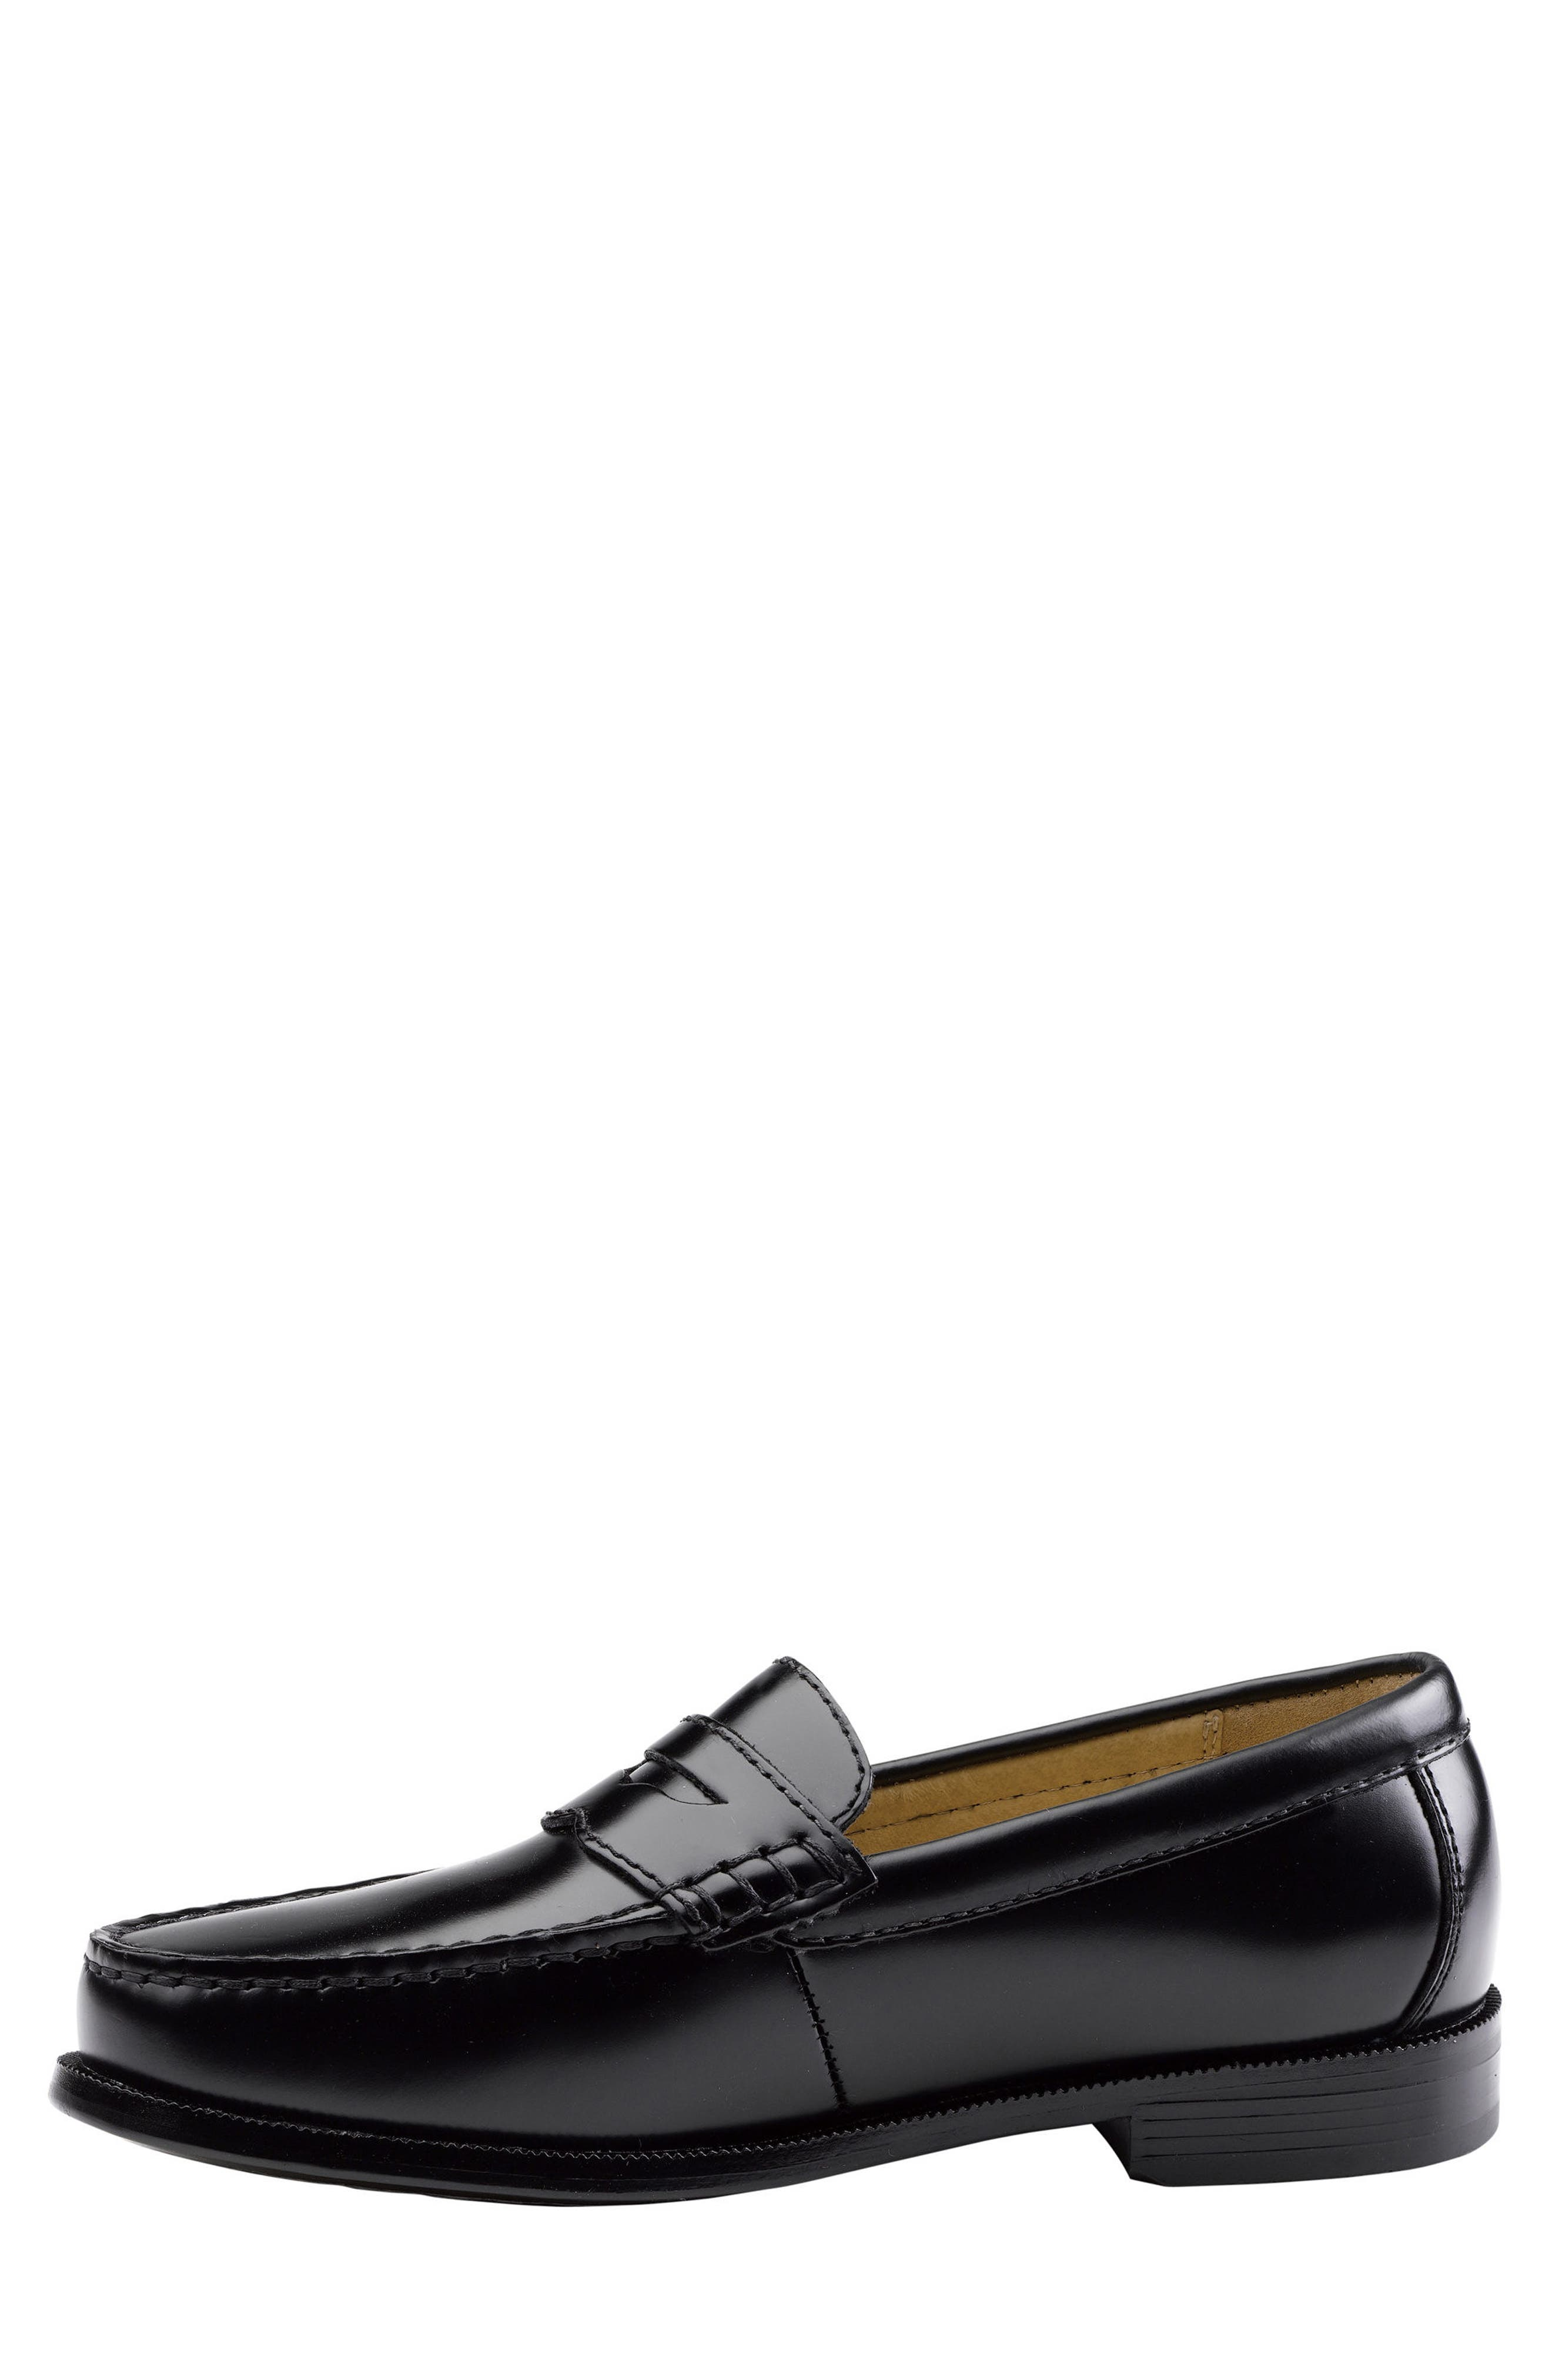 Carmichael Penny Loafer,                             Alternate thumbnail 3, color,                             Black